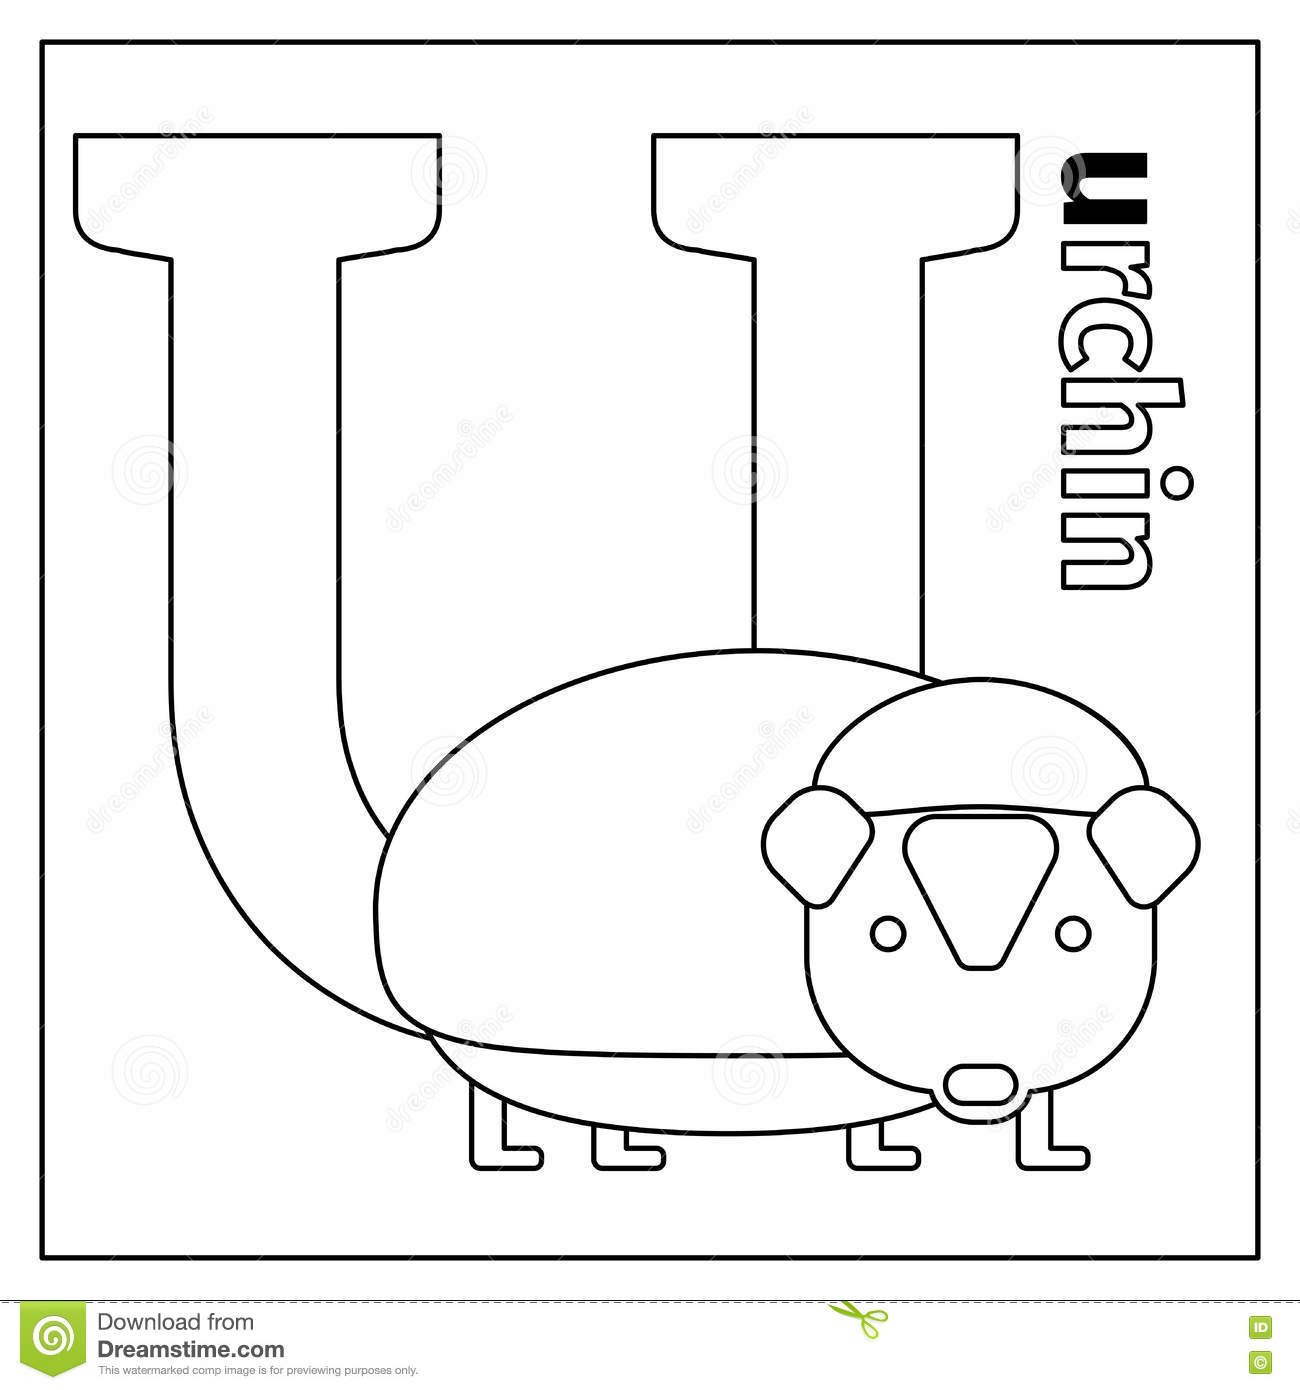 Letter u coloring pages - Royalty Free Vector